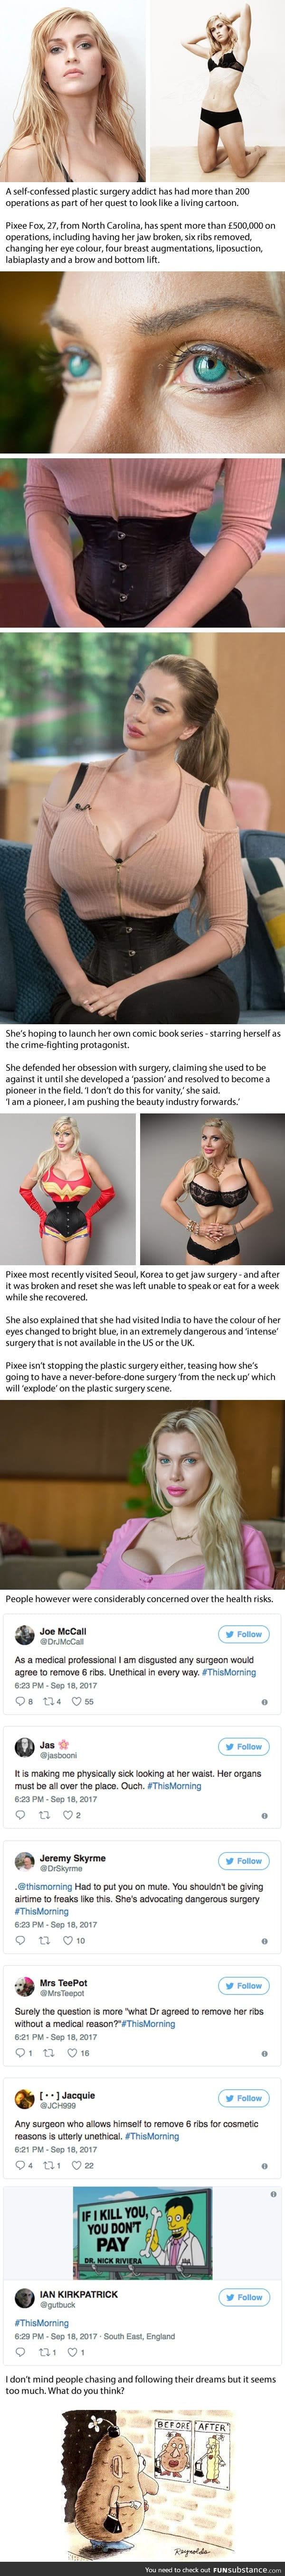 Woman Removes Six Ribs To Look Like Wonder Woman